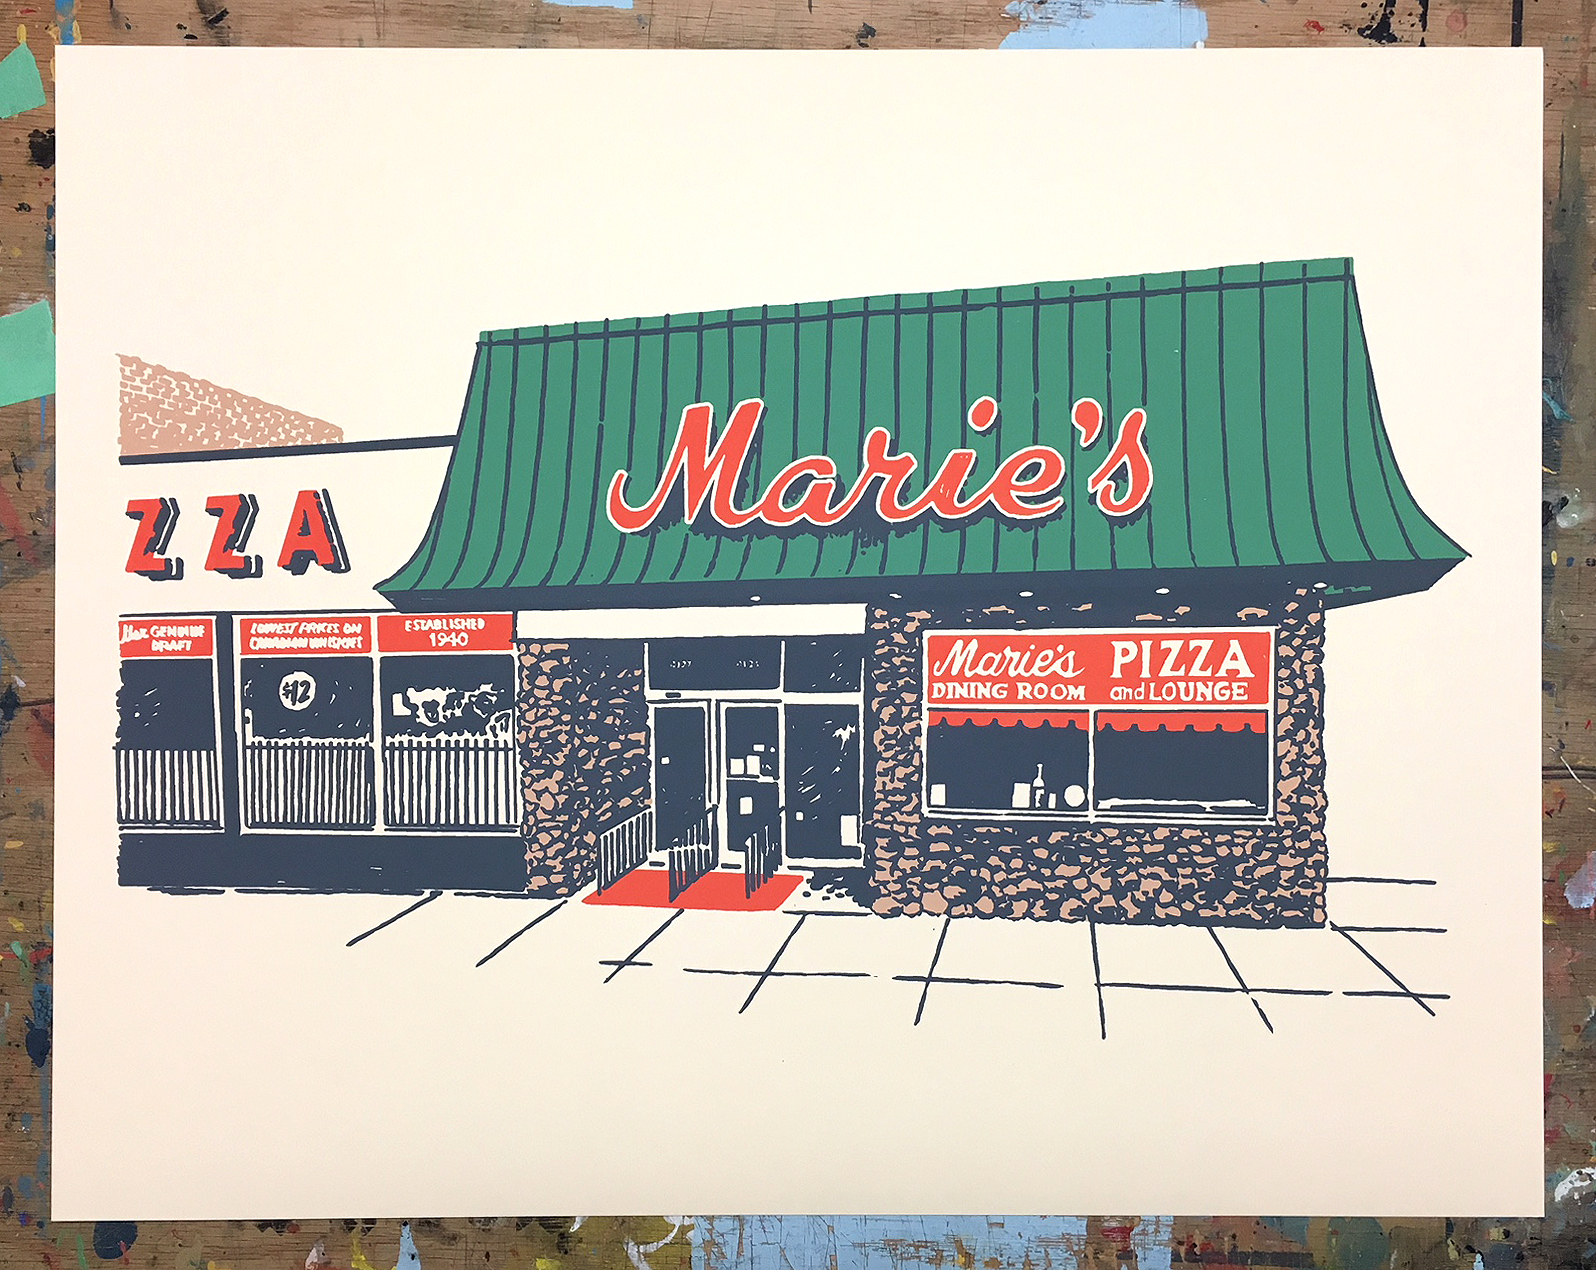 One of the Chicago-inspired pieces of art to be displayed at the Pizza Summit